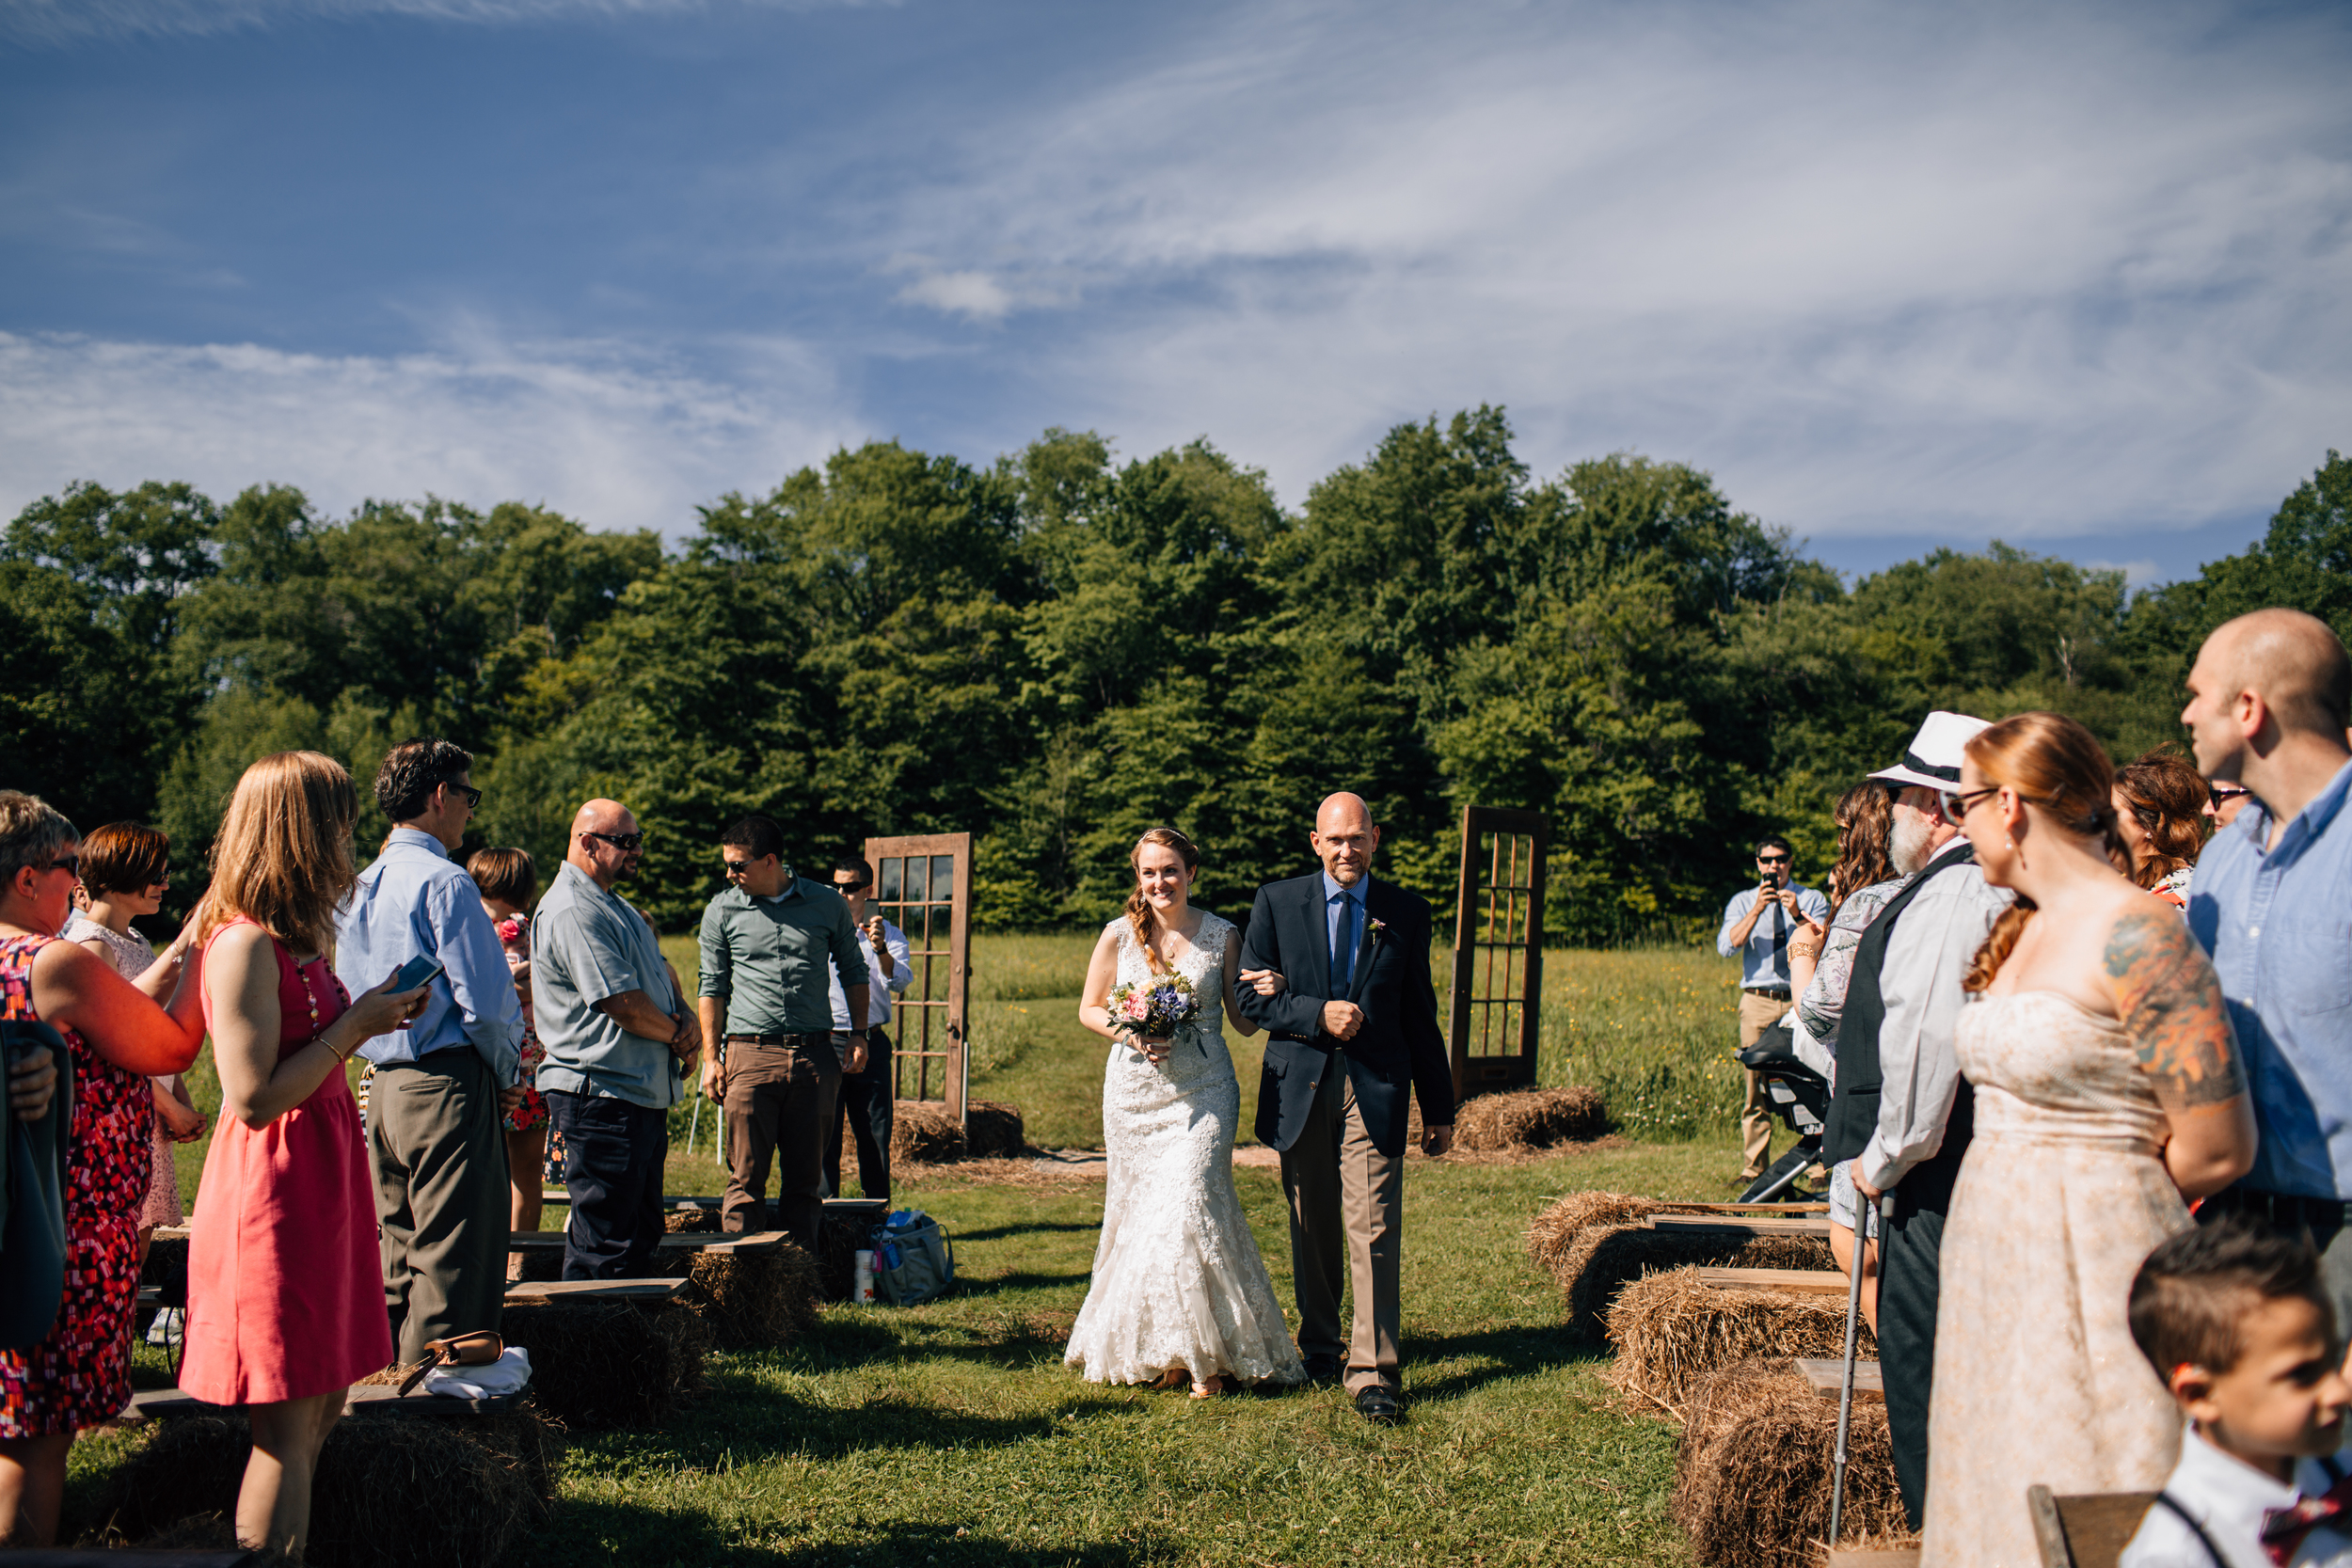 KELLIandBRADweddingJUNE2015 - ceremony (11 of 62).jpg